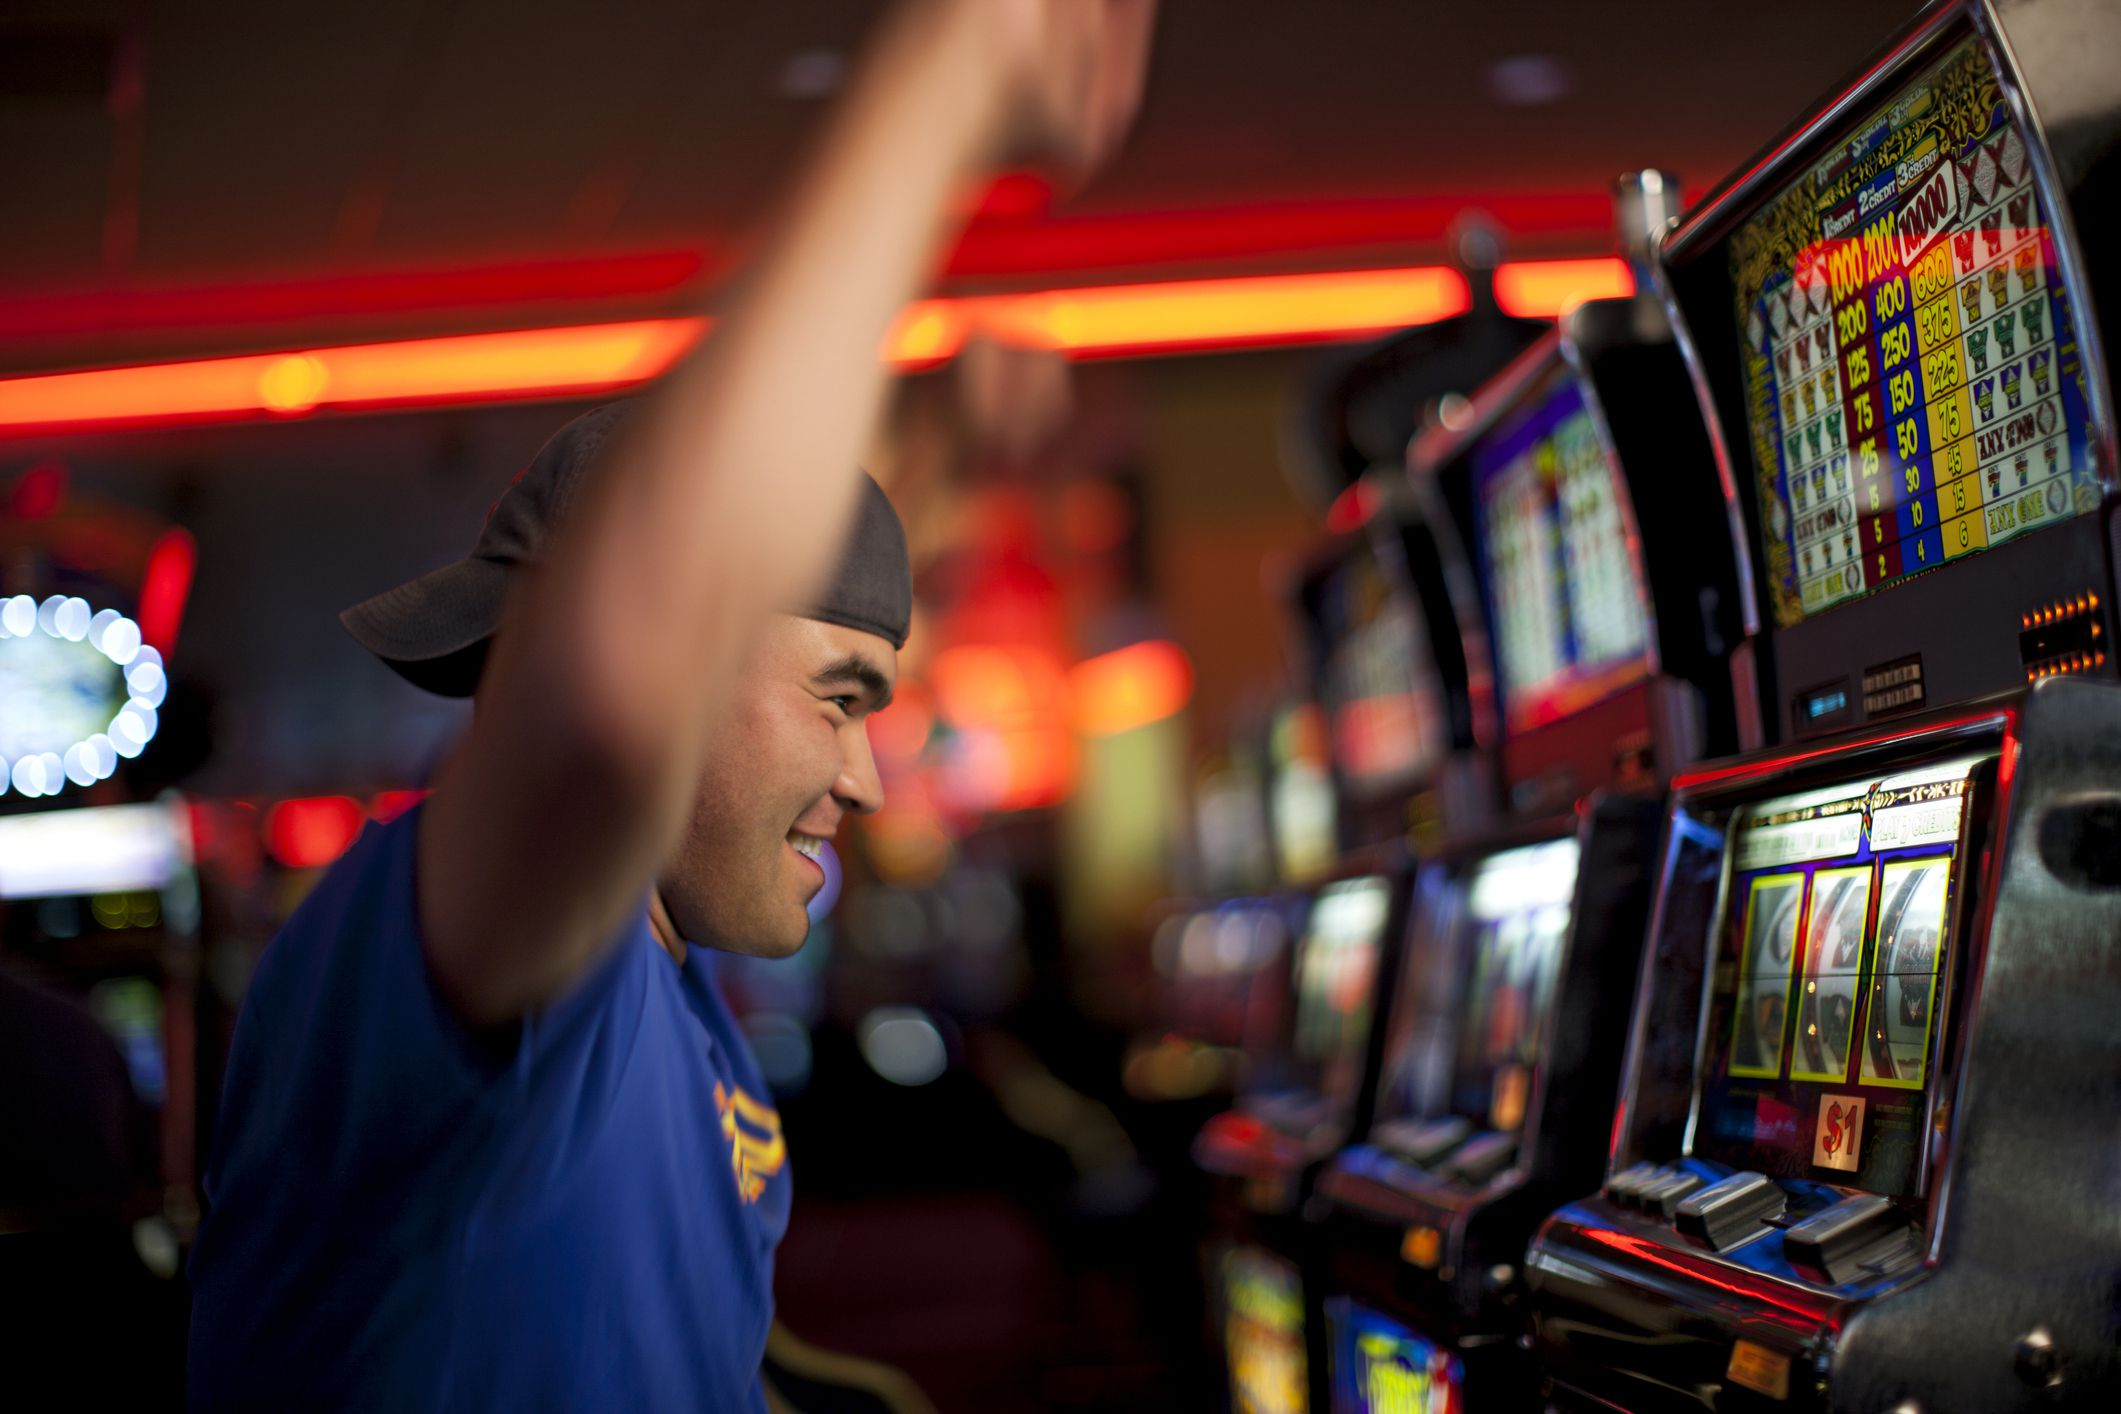 Strategically Select Which Slot Machines to Play